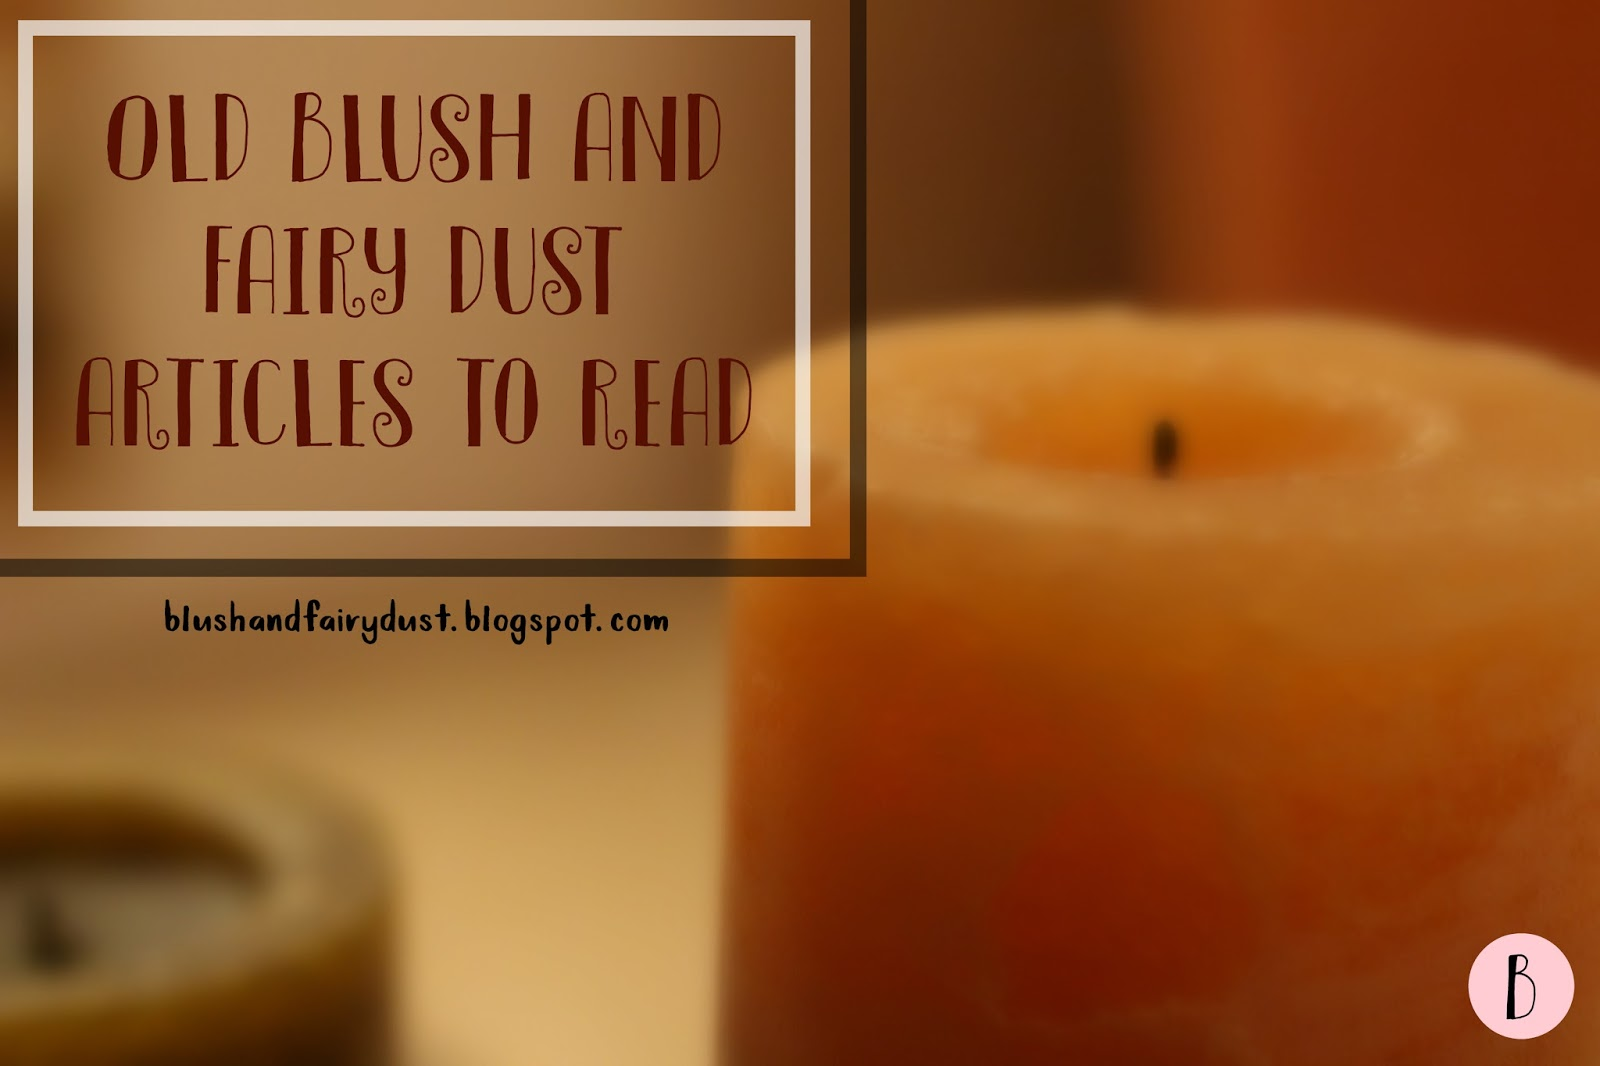 Lazy Roundup: Ten Old Blush and Fairy Dust Articles to Read